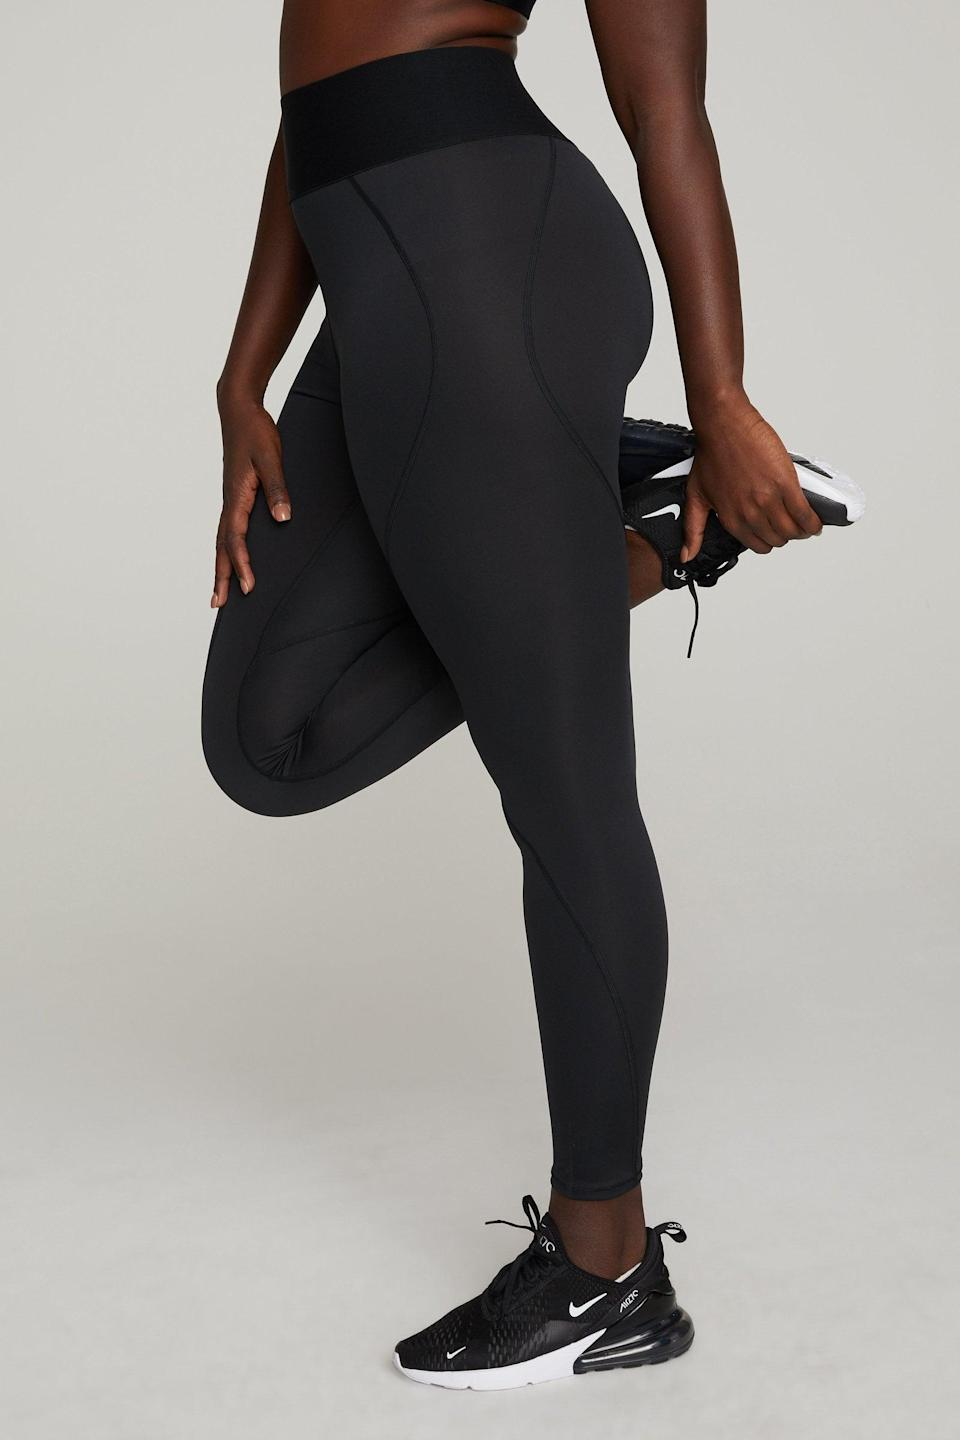 <p>These <span>Good American Active Essential Icon Leggings</span> ($85) are the updated version of the brand's bestselling legging. They've got all the shape and contouring you love, with a more sweat-wicking feel. Sign us up.</p>